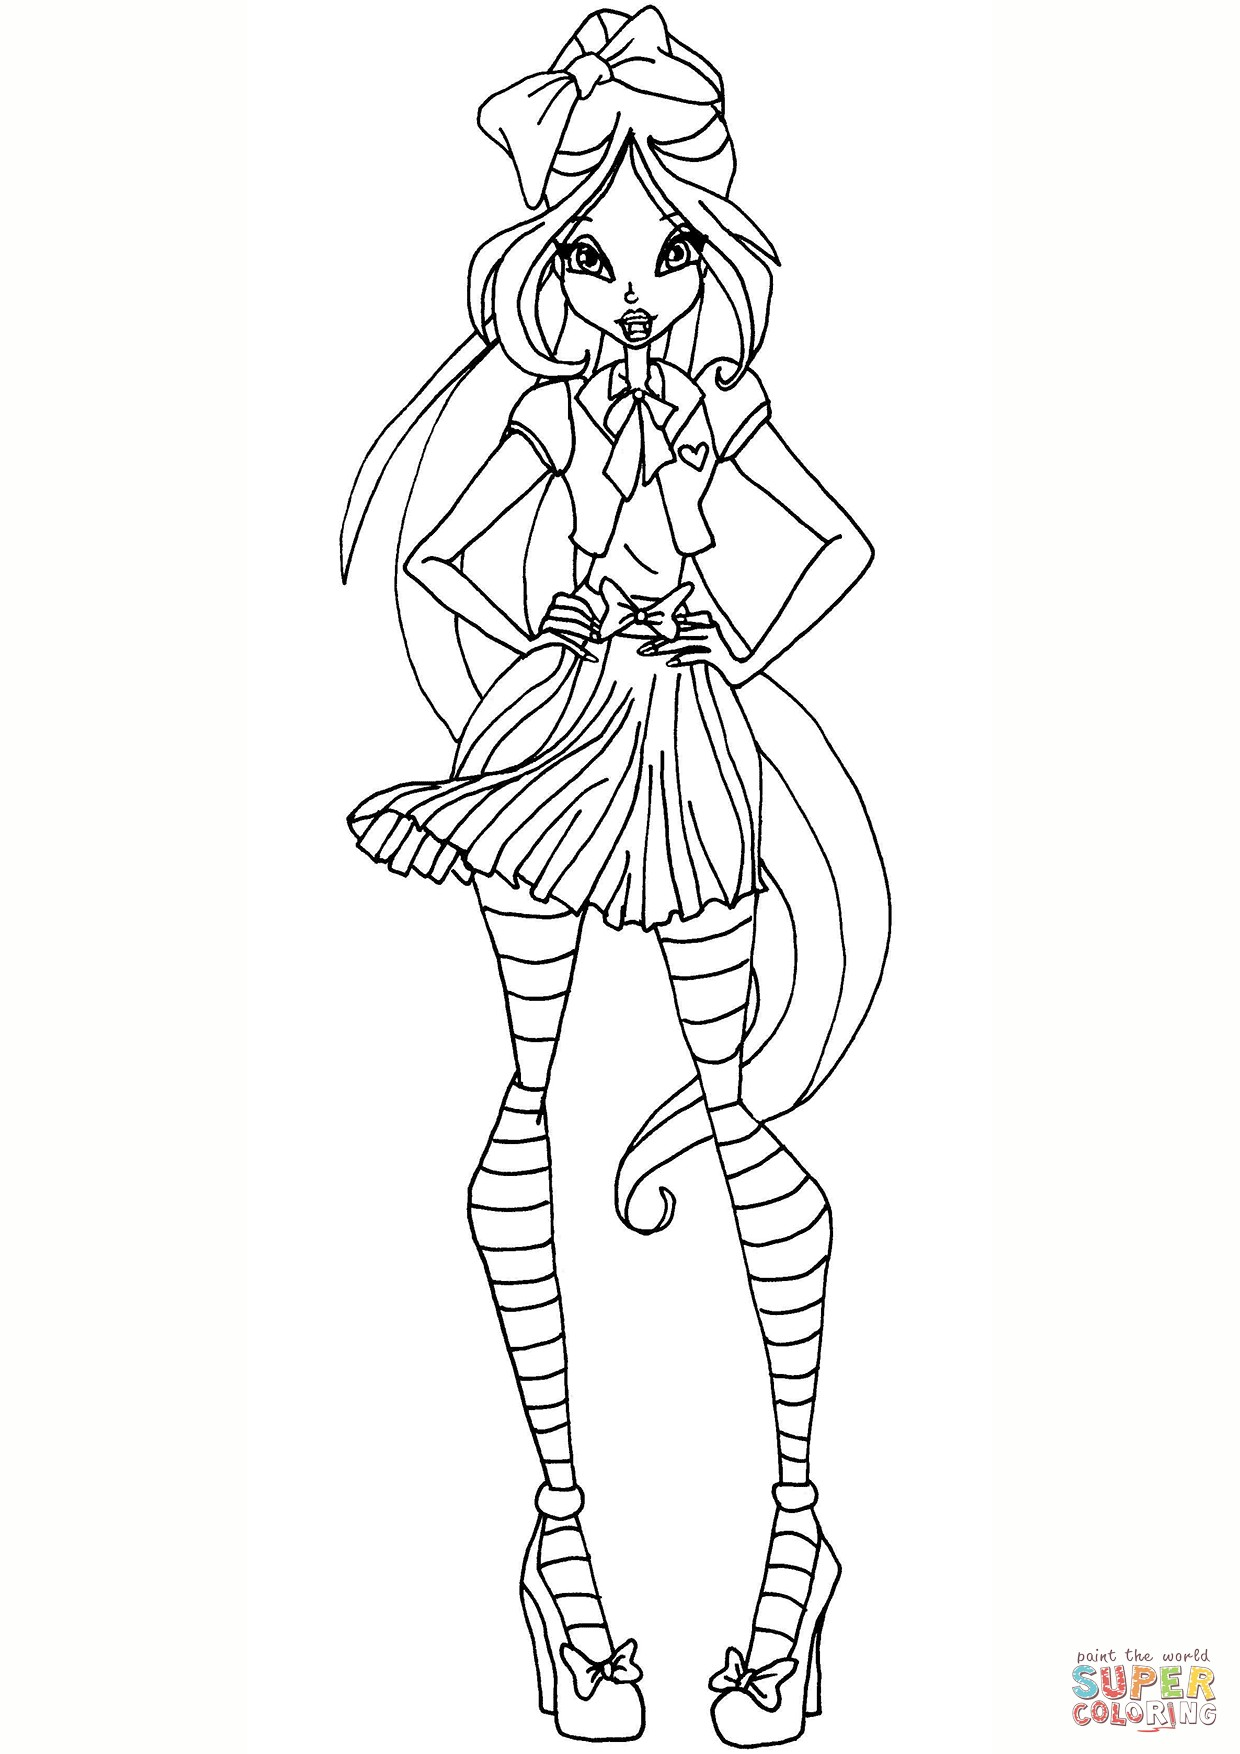 1240x1754 Winx Club Layla Coloring Pages For Girls Inspirational Winx Club